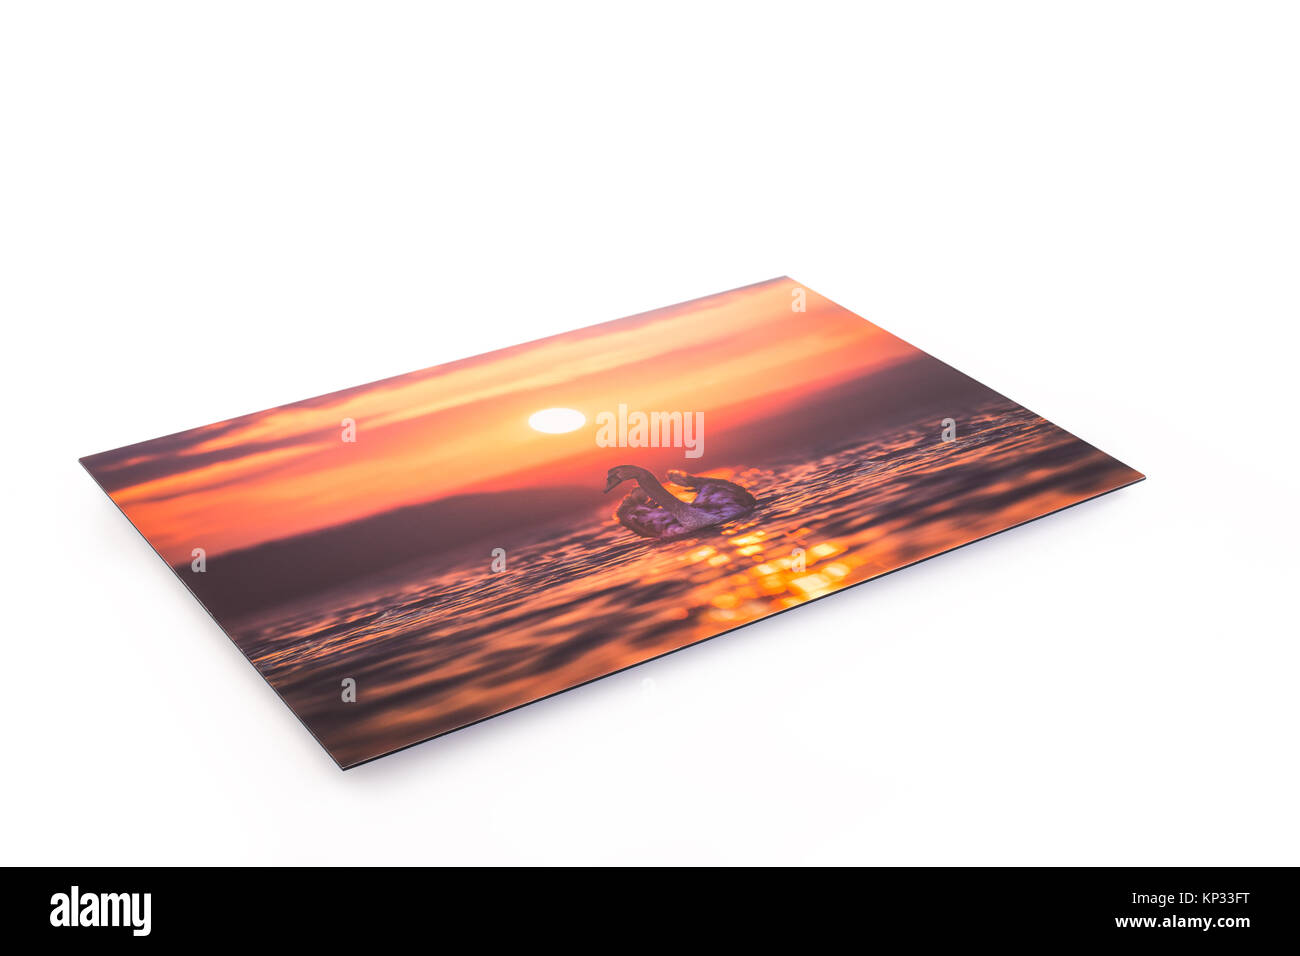 Canvas print of landscape scenery hung up on wall. - Stock Image